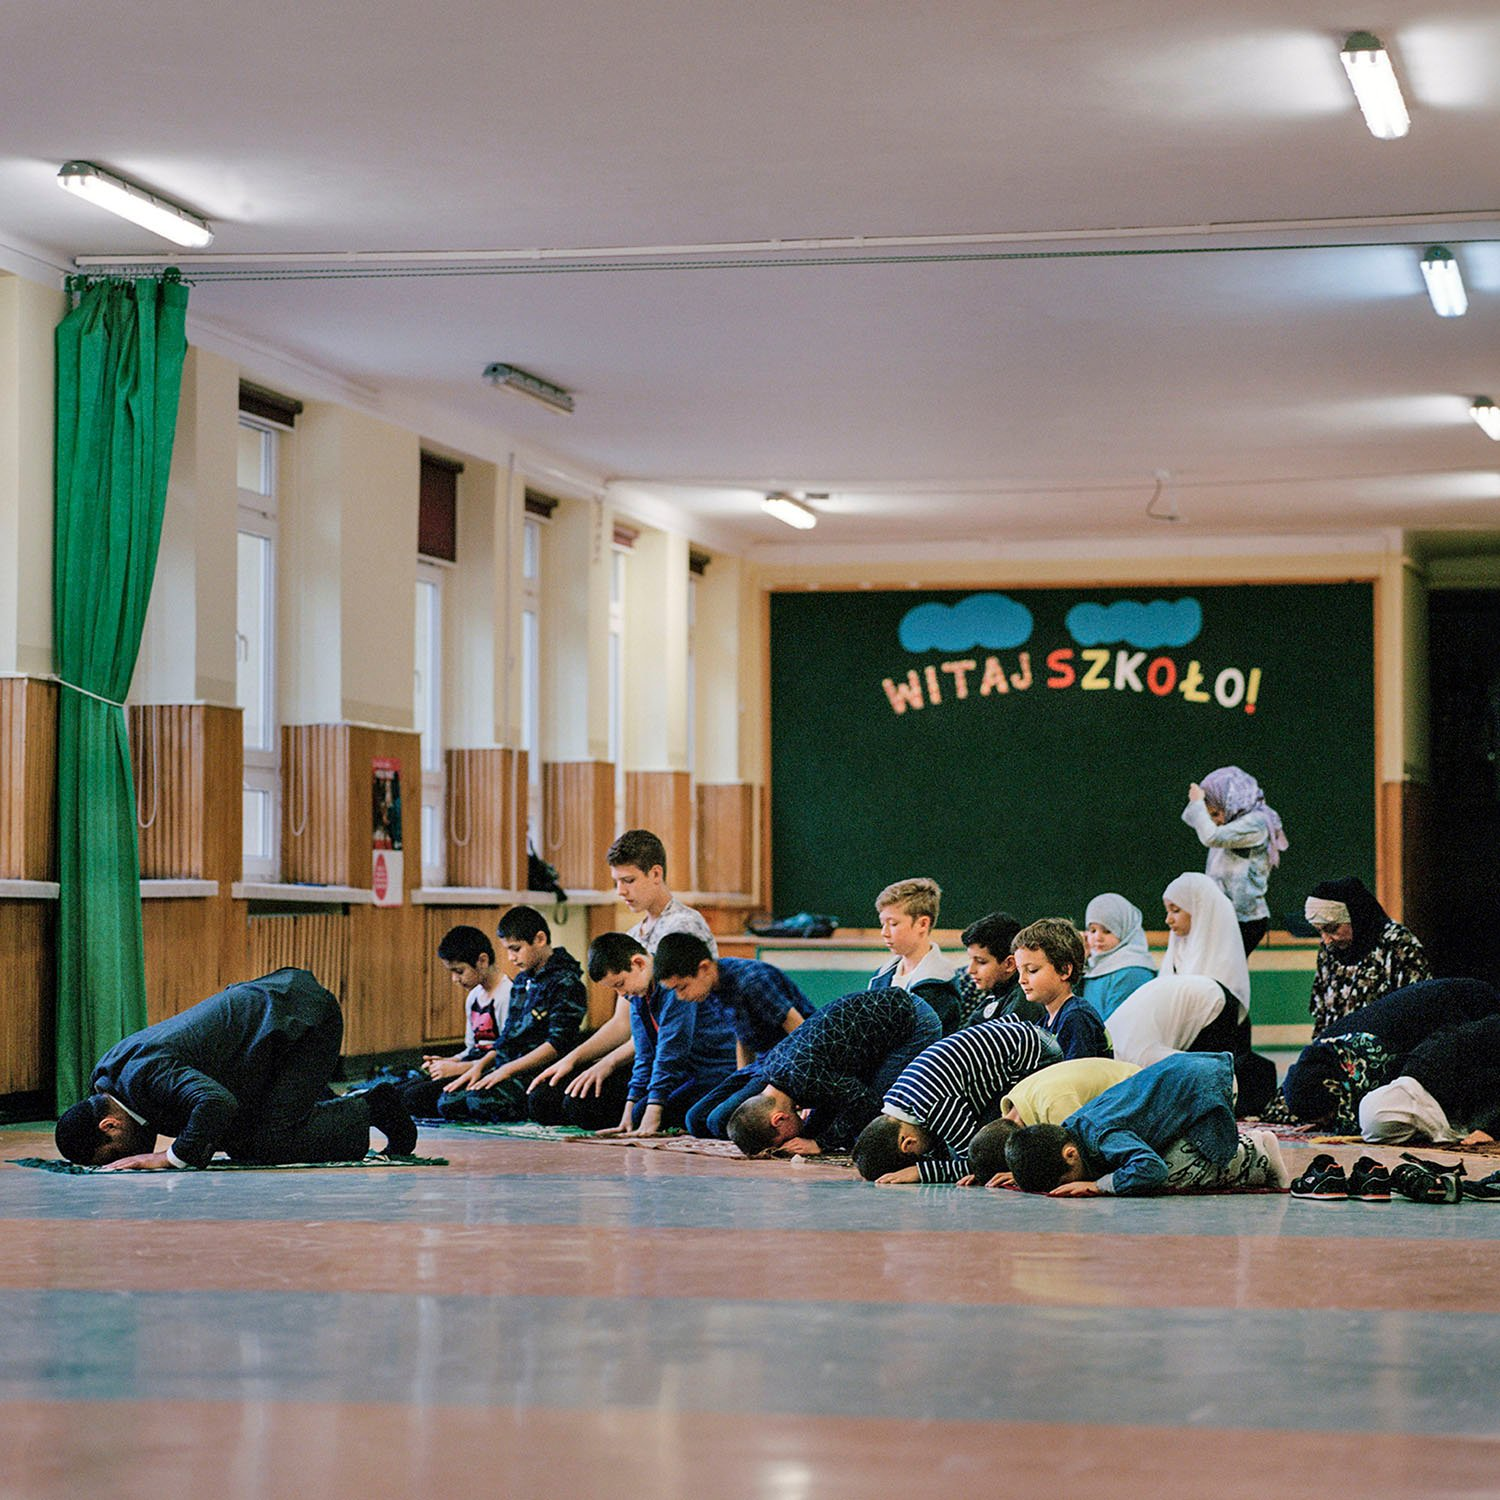 Islam for europeans polish muslim community in the heart of europe every child in poland is greeted by this sentence in early september when school commences after the summer holidays although religious education is not m4hsunfo